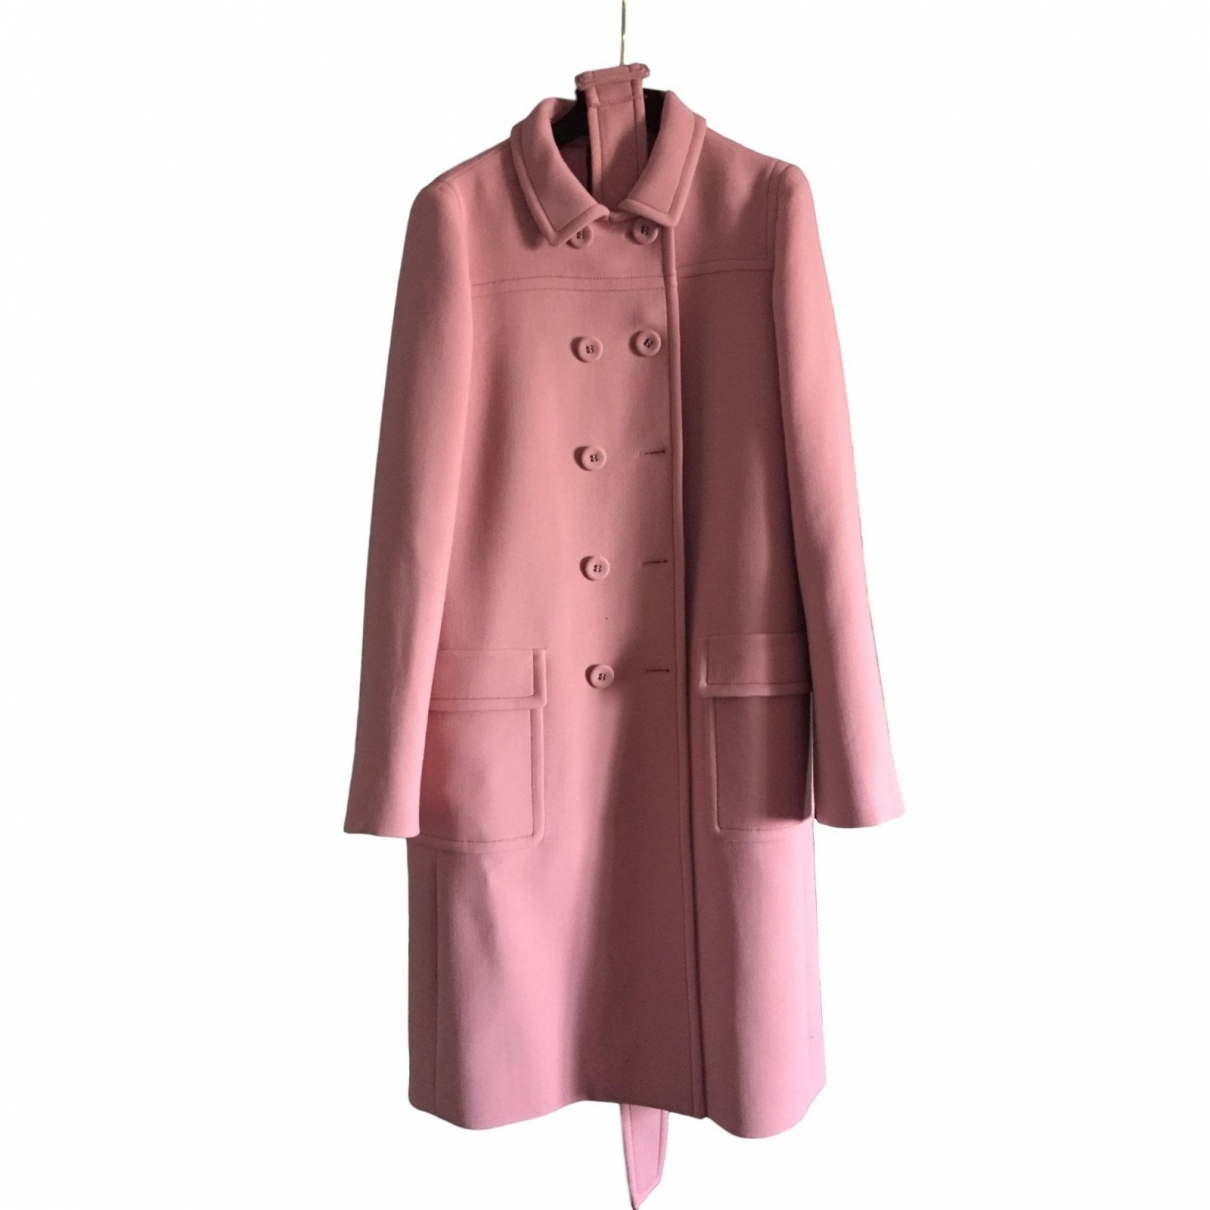 Bottega Veneta \N Pink Wool coat for Women 40 IT